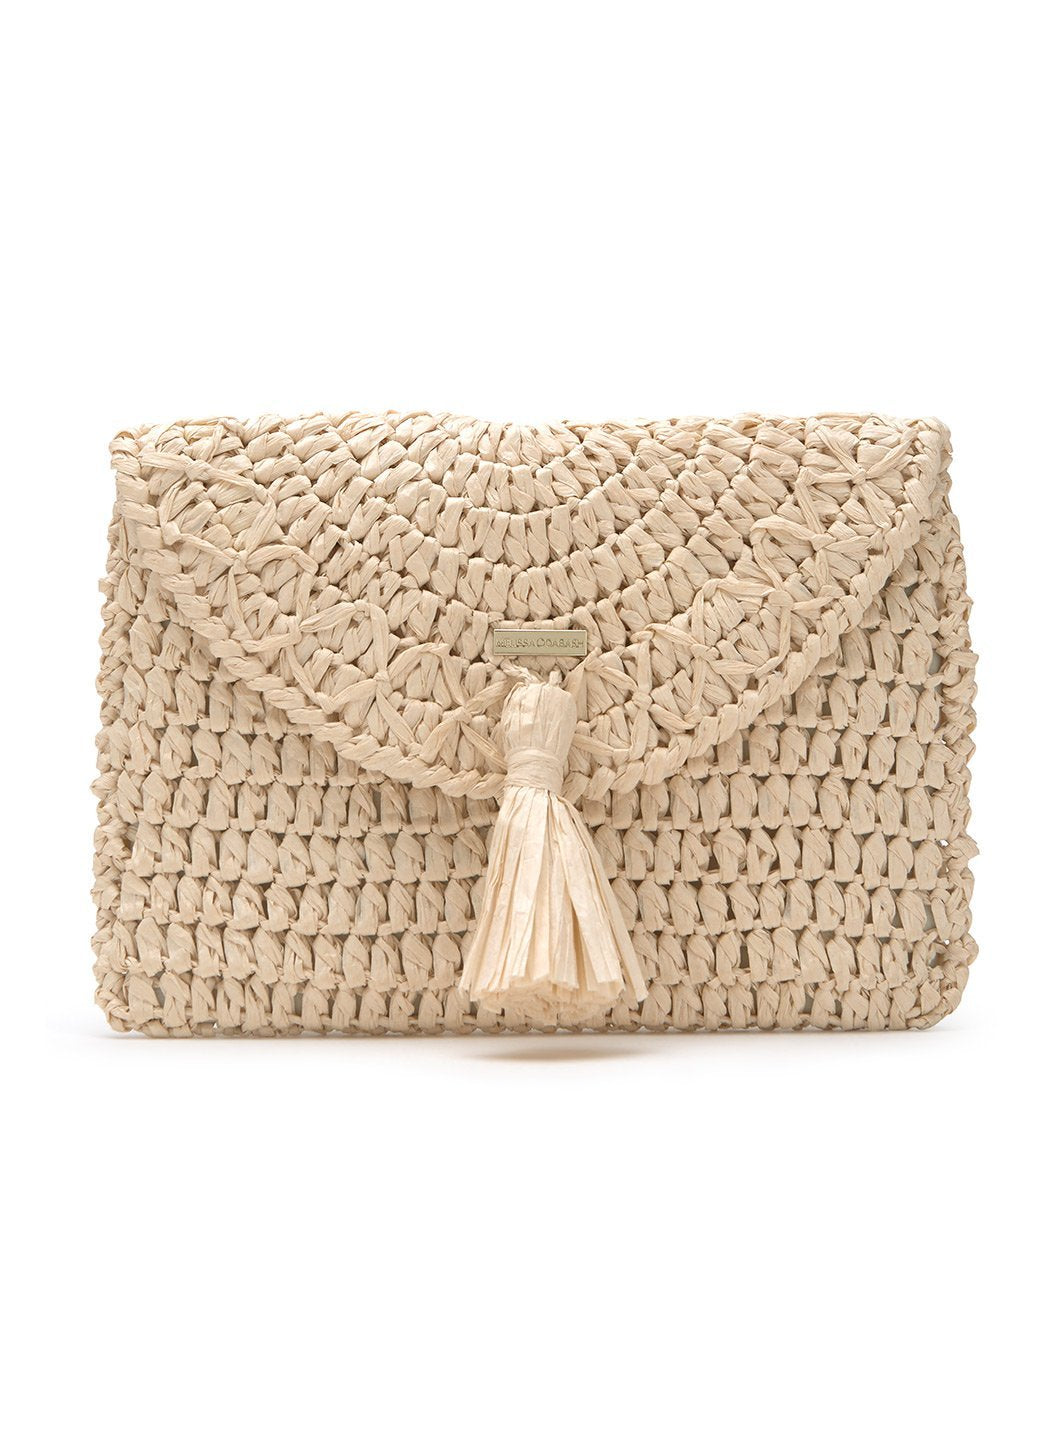 anacapri natural raffia clutch bag 1 2019